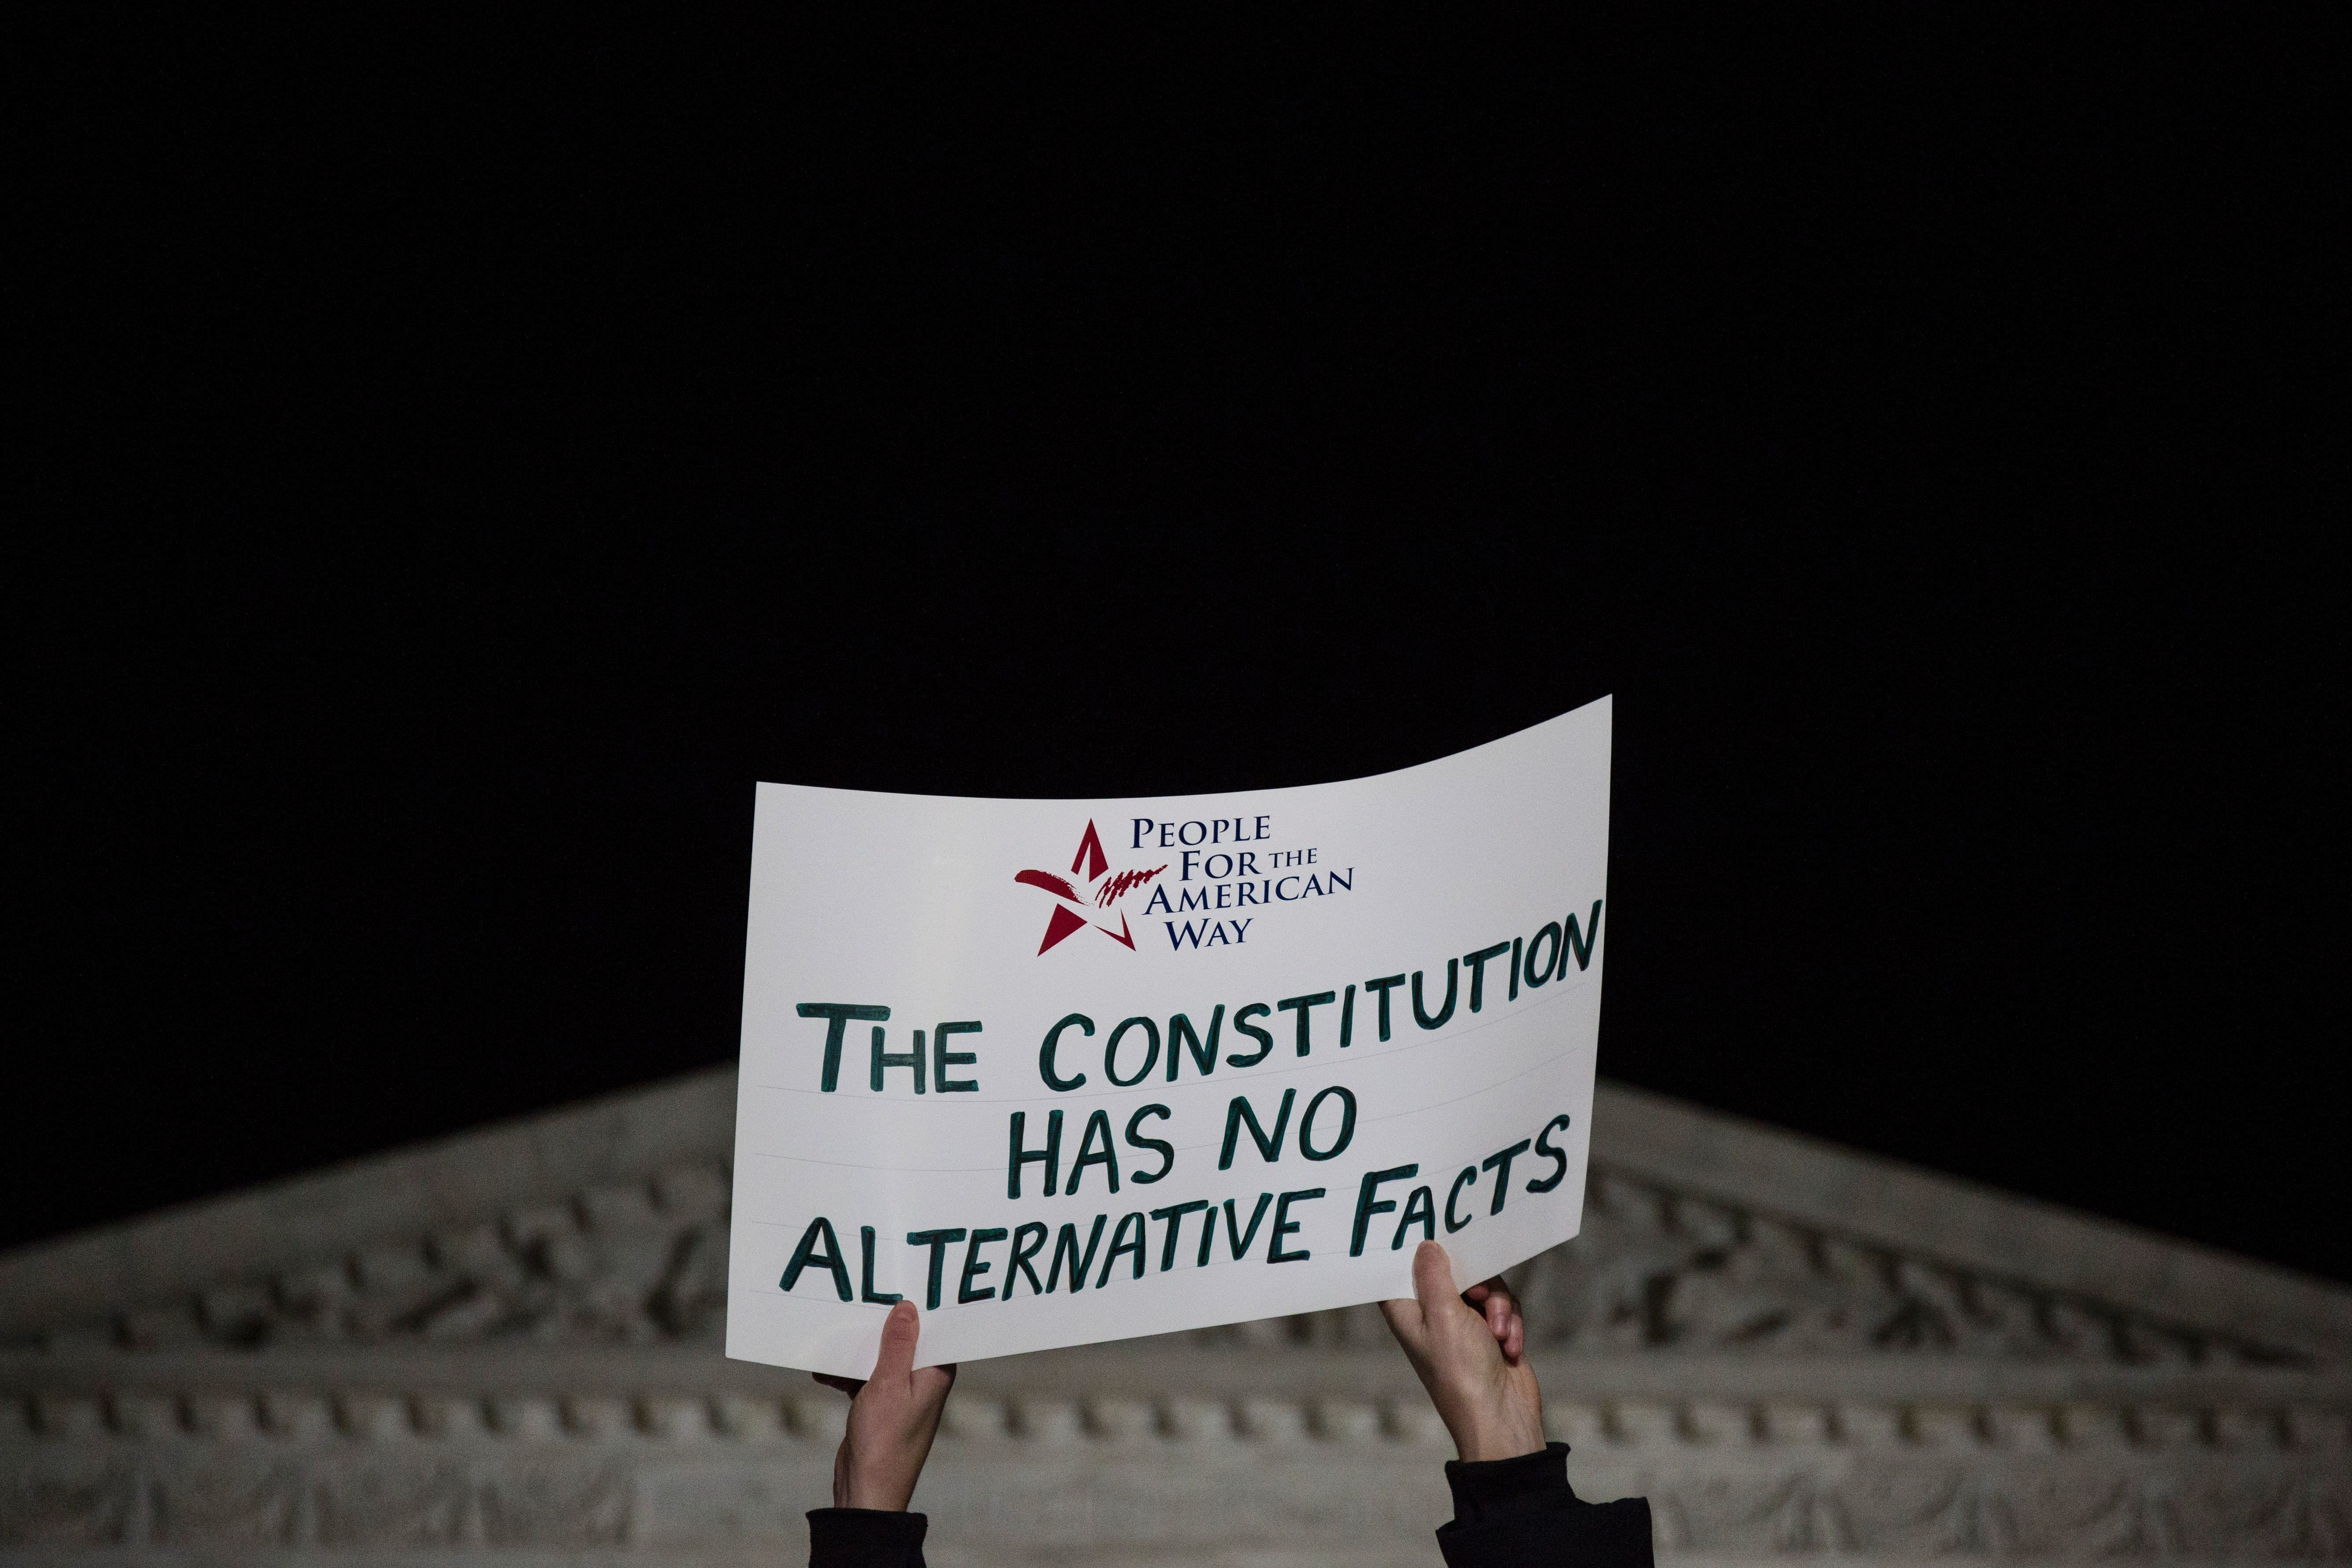 Demonstrators gather outside of The United States Supreme Court after President Donald Trump announced Neil Gorsuch as his nominee to fill the seat of former Associate Justice of the Supreme Court Antonin Scalia in Washington, DC, on January 31, 2017. President Donald Trump nominated federal appellate judge Neil Gorsuch as his Supreme Court nominee, tilting the balance of the court back in the conservatives' favor. / AFP / ZACH GIBSON        (Photo credit should read ZACH GIBSON/AFP/Getty Images)